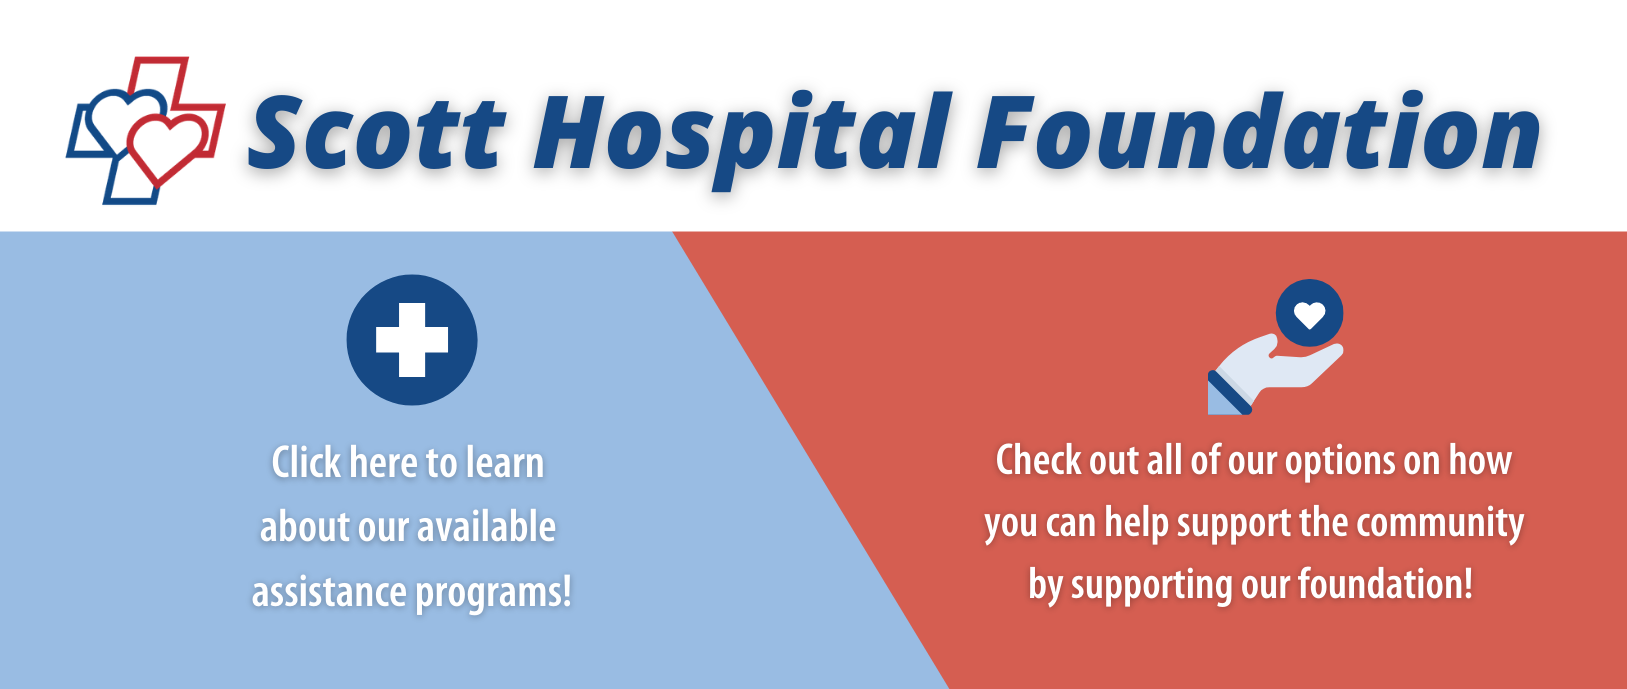 Scott hospital foundation.  Click here to learn about our available assistance program. check out all of our options on how you can help support the community by supporting our foundation.